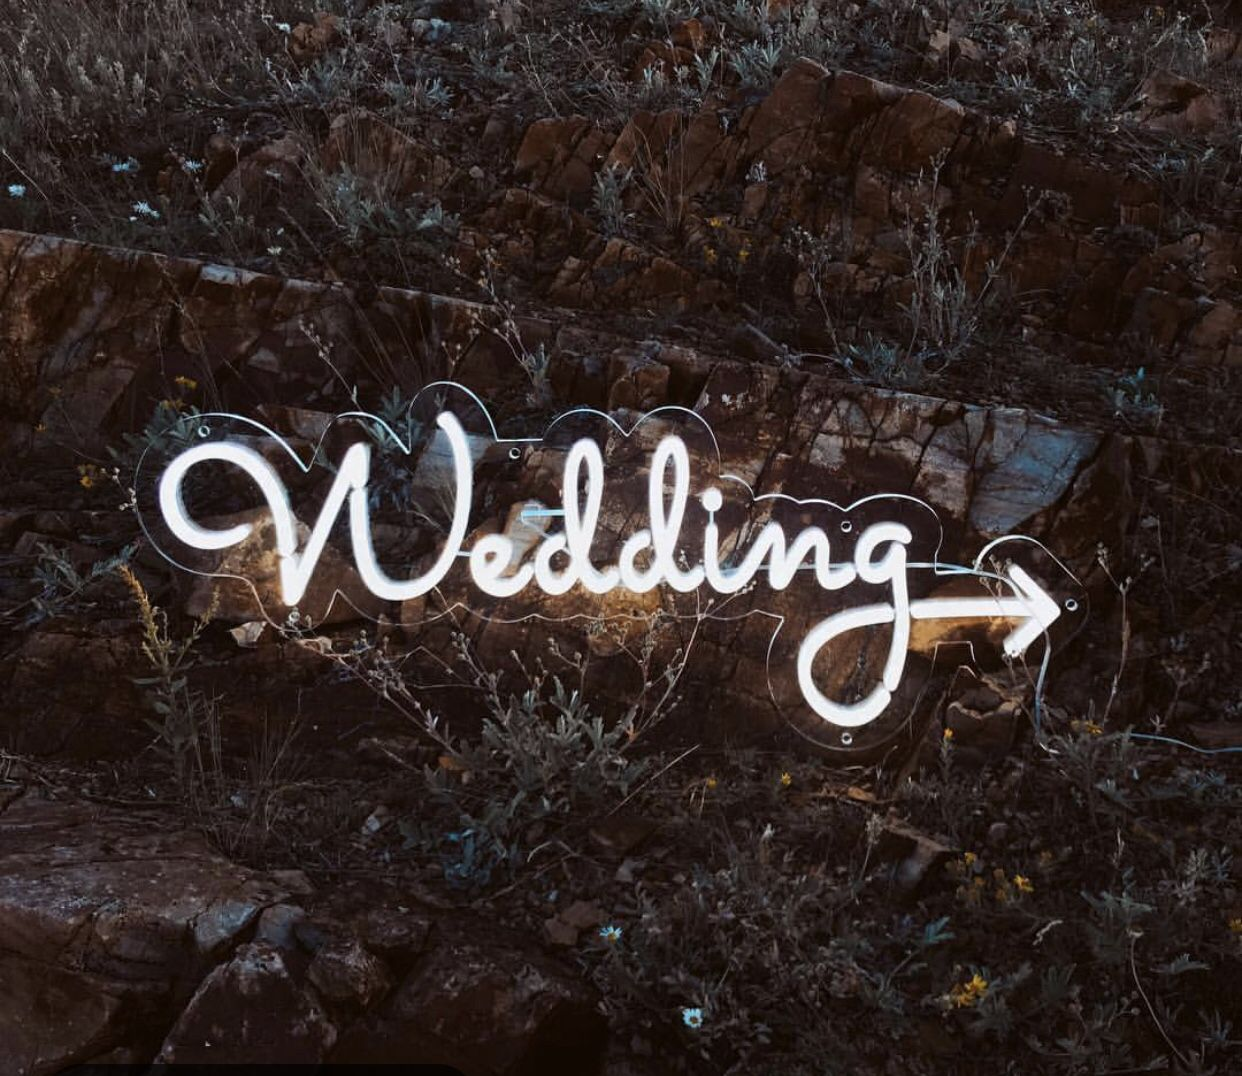 WEDDING direction. ⚡️Neon Sign ⚡️ in 2020 Neon signs